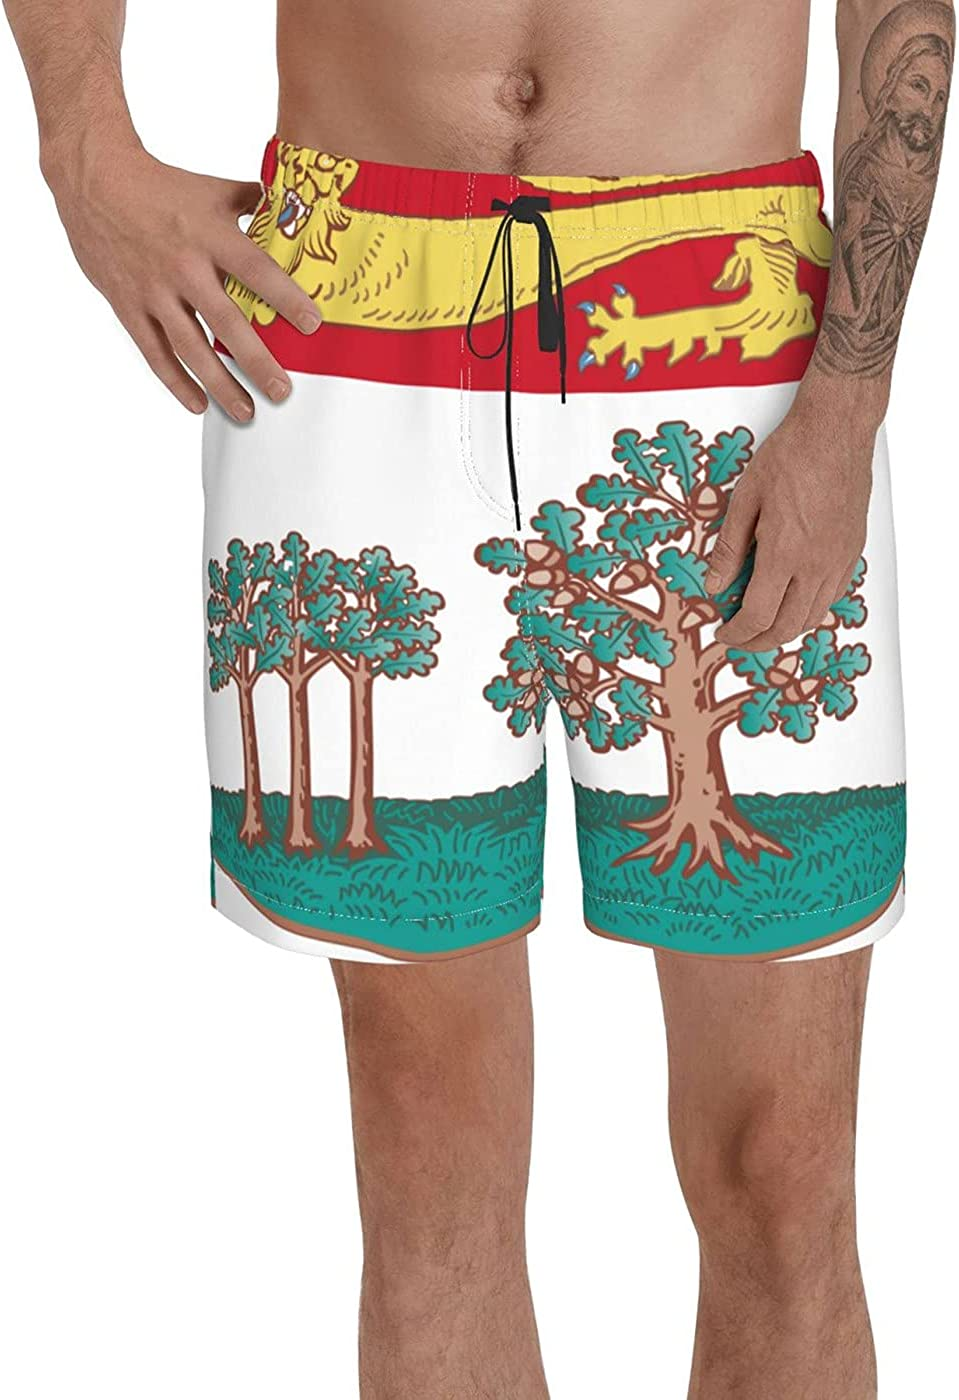 Count Prince Edward Island Flag Men's 3D Printed Funny Summer Quick Dry Swim Short Board Shorts with